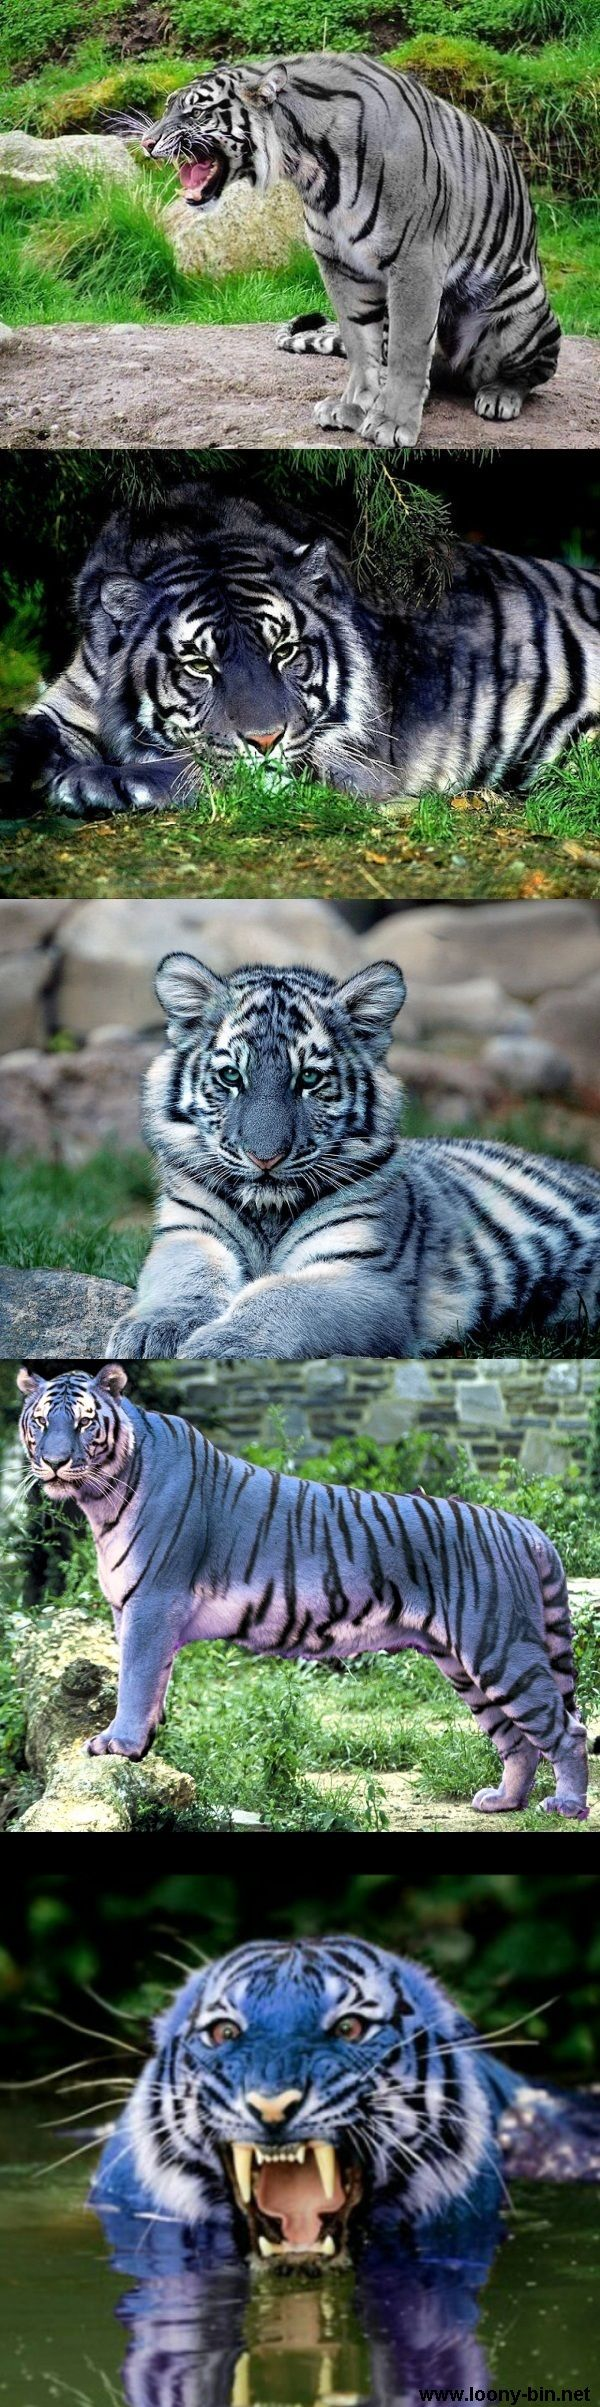 "Maltese Blue Tiger. Om people are seriously dumb. These aren't real. Or at last they've never been proven, and the last ""sighting "" was in the 20's. These are Photoshopped or dyed. Stop spreading ridiculousness."